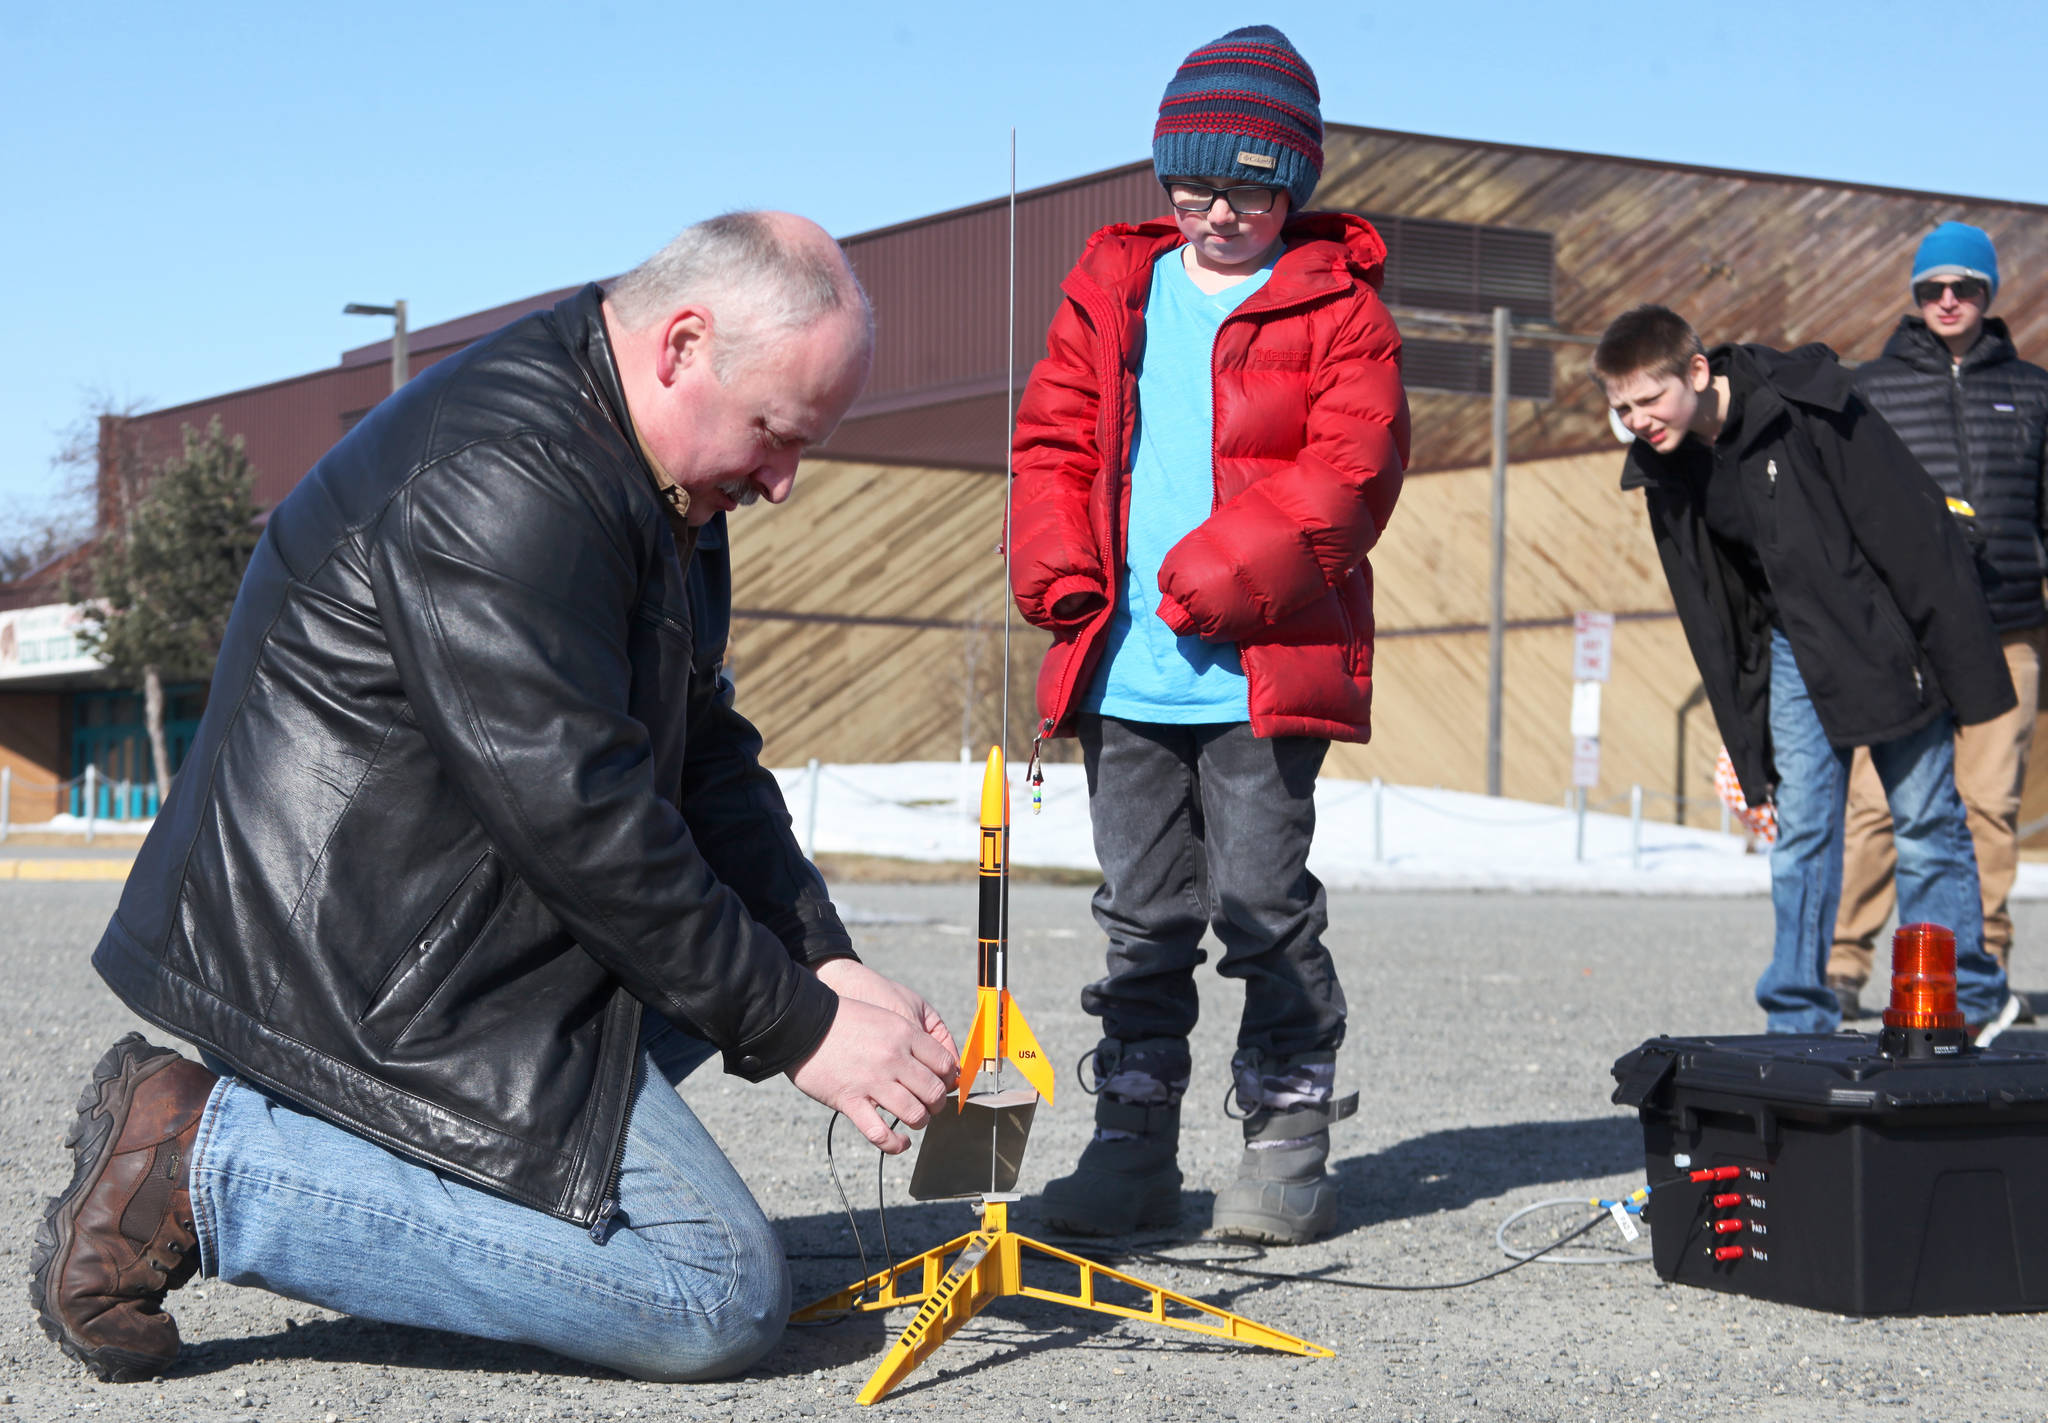 "Scott Aleckson (left) clips wires to the ignition contacts of a model rocket while students at his model rocketry session observe in the parking lot of the Soldotna Regional Sports Complex in Soldotna, Alaska on Saturday, May 31, 2018. Aleckson said he made and launched his first plastic, balsa wood, and cardboard rocket as a 4th grade student at Soldotna Elementary School. Since then he's built a custom launch system, he said, ""with recycled electronics and a lot of soldering time."" Aleckson taught Saturday's rocketry class through the Soldotna Community Schools program, and said he'd like to continue spreading the hobby. ""If I could get a model rocket club going, that'd be great,"" he said. ""Stuff like this is much more fun in a group."" (Photo by Ben Boettger/Peninsula Clarion)"